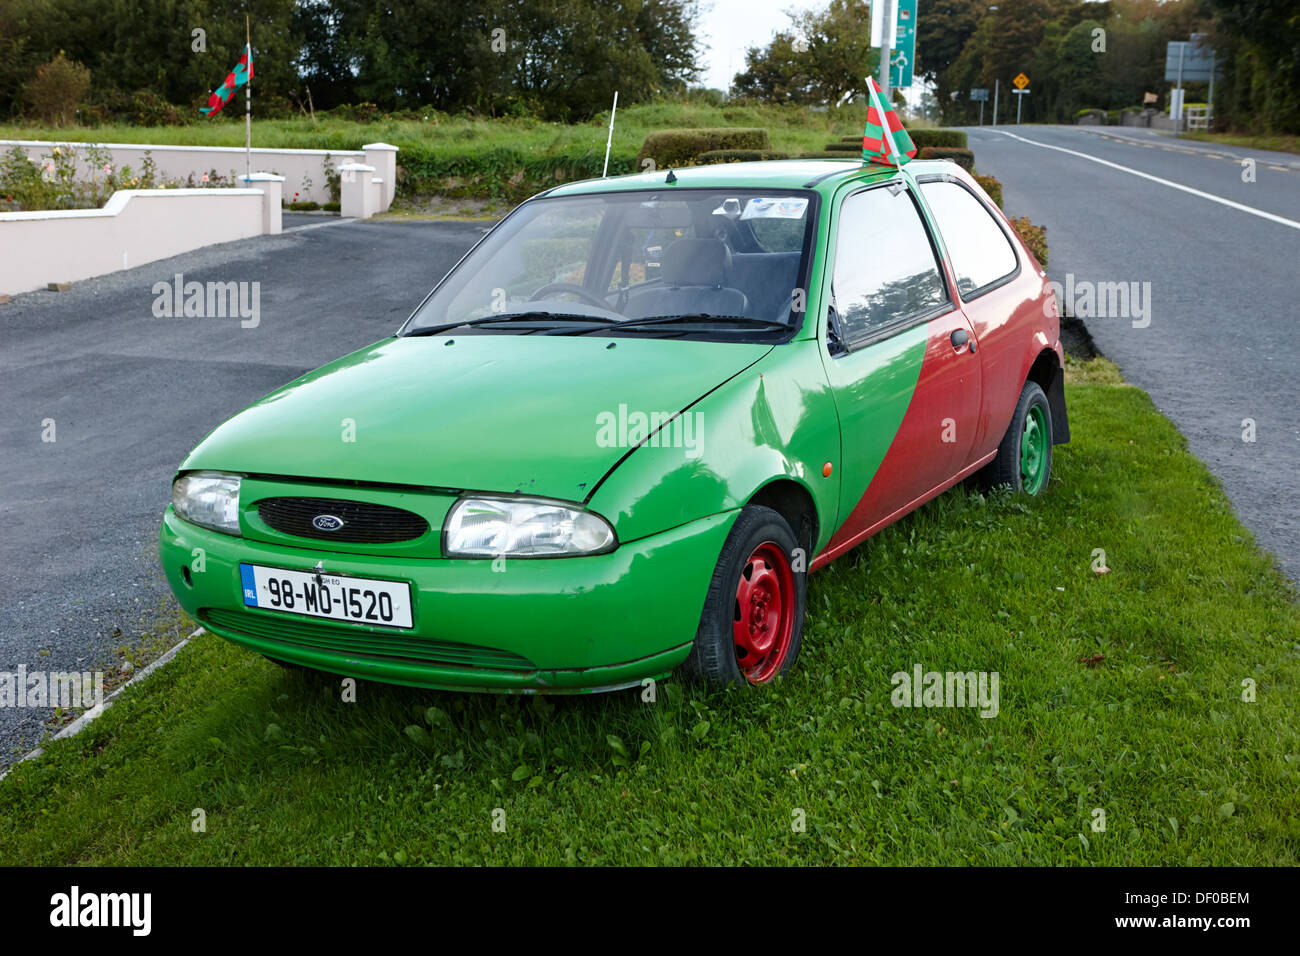 Stock Photo - old ford fiesta car painted in county mayo red and green gaa colours at the side of the road republic of ireland & old ford fiesta car painted in county mayo red and green gaa ... markmcfarlin.com